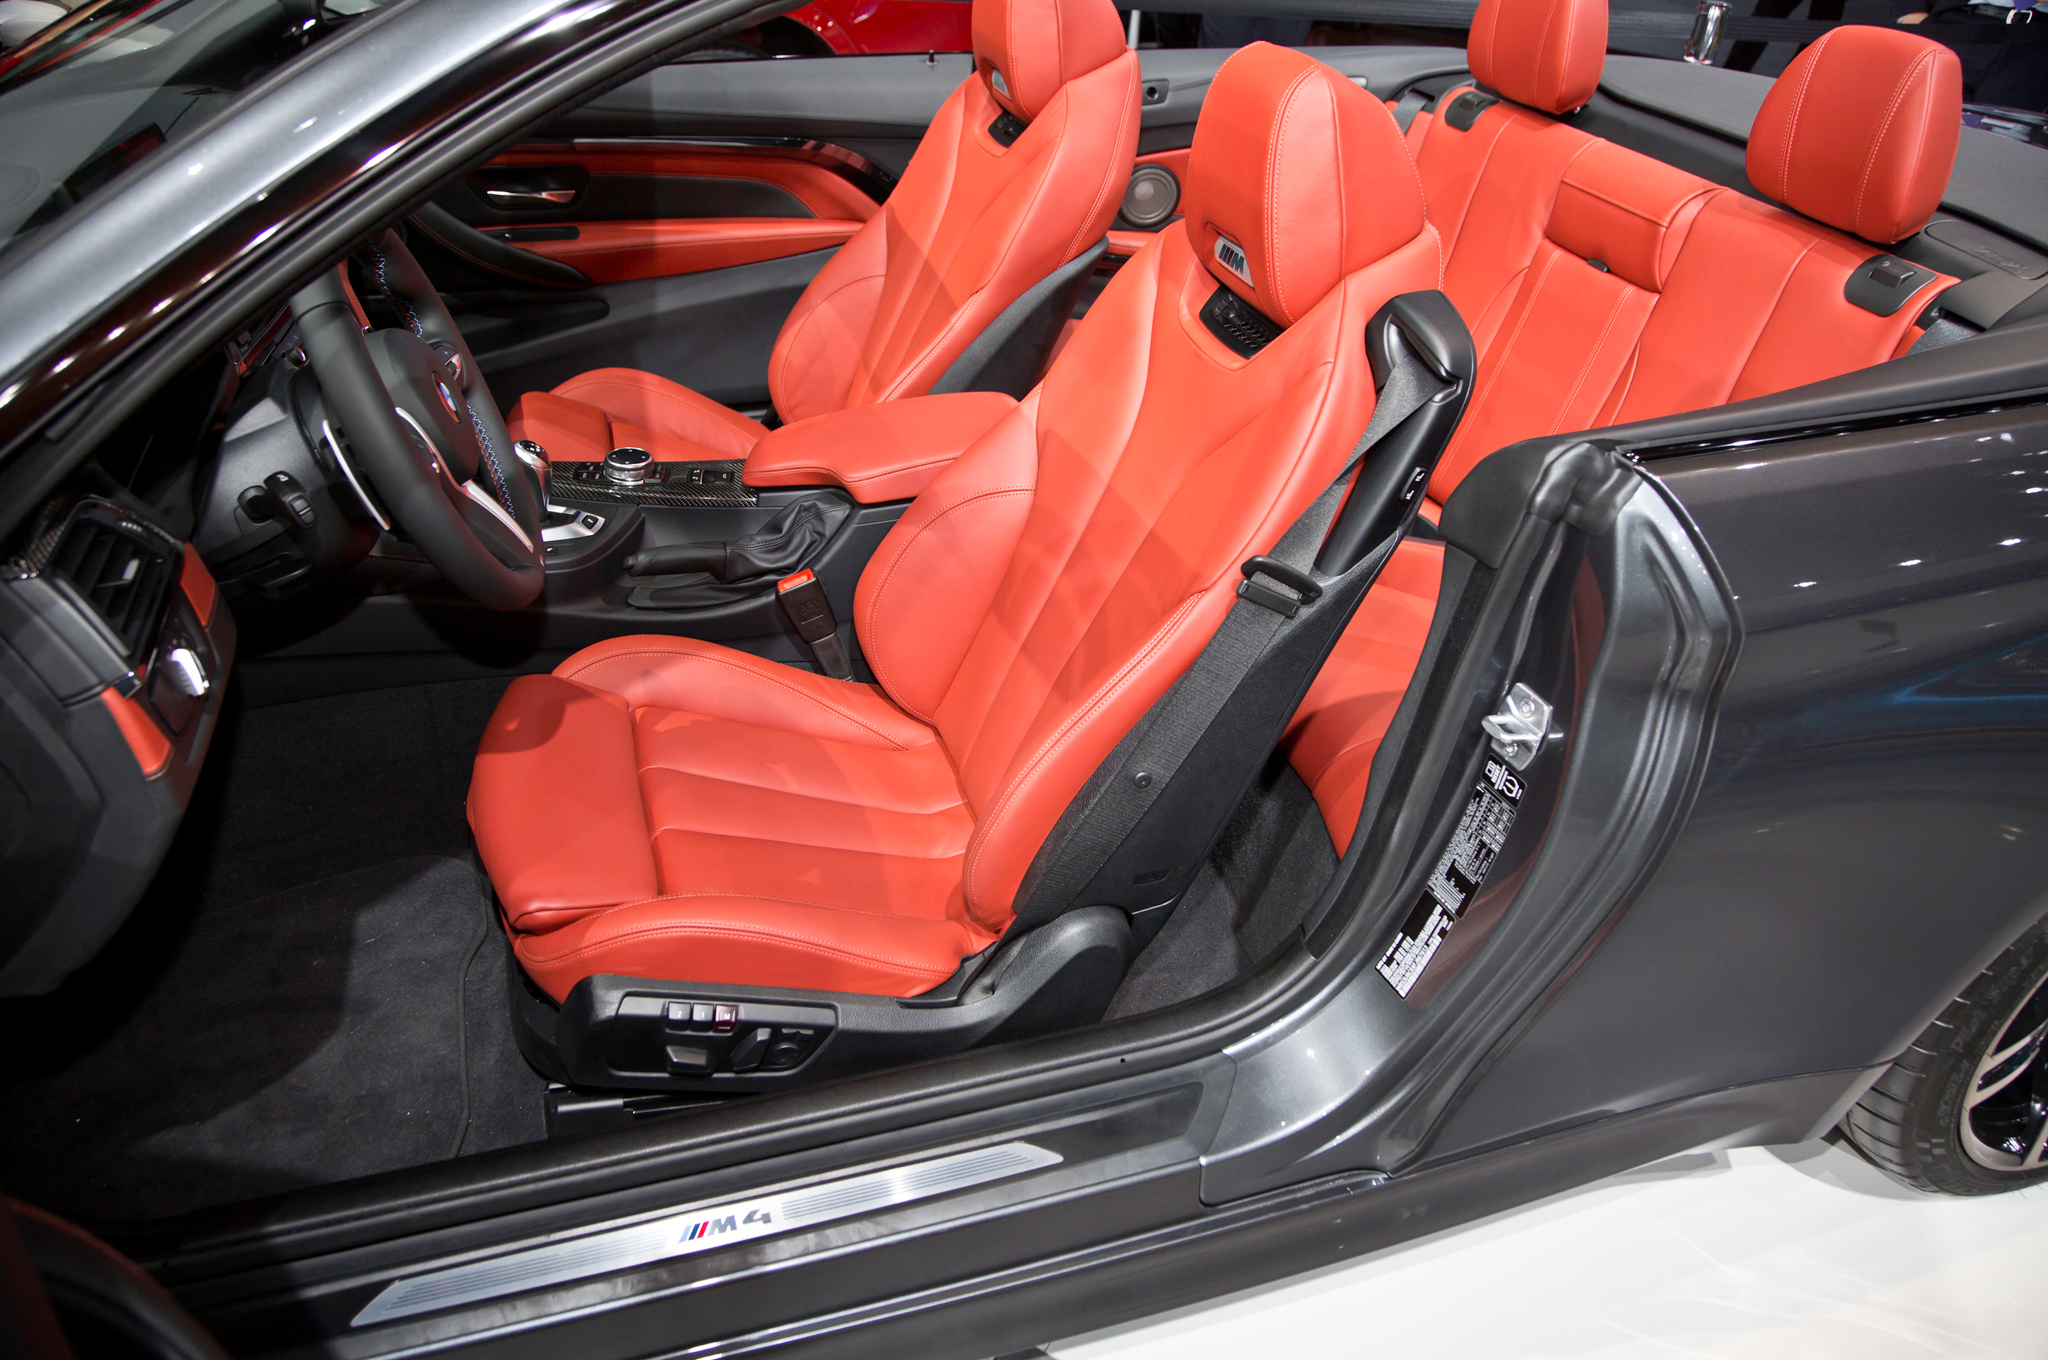 2015 Bmw M4 Convertible Interior Seats  (Photo 38 of 50)